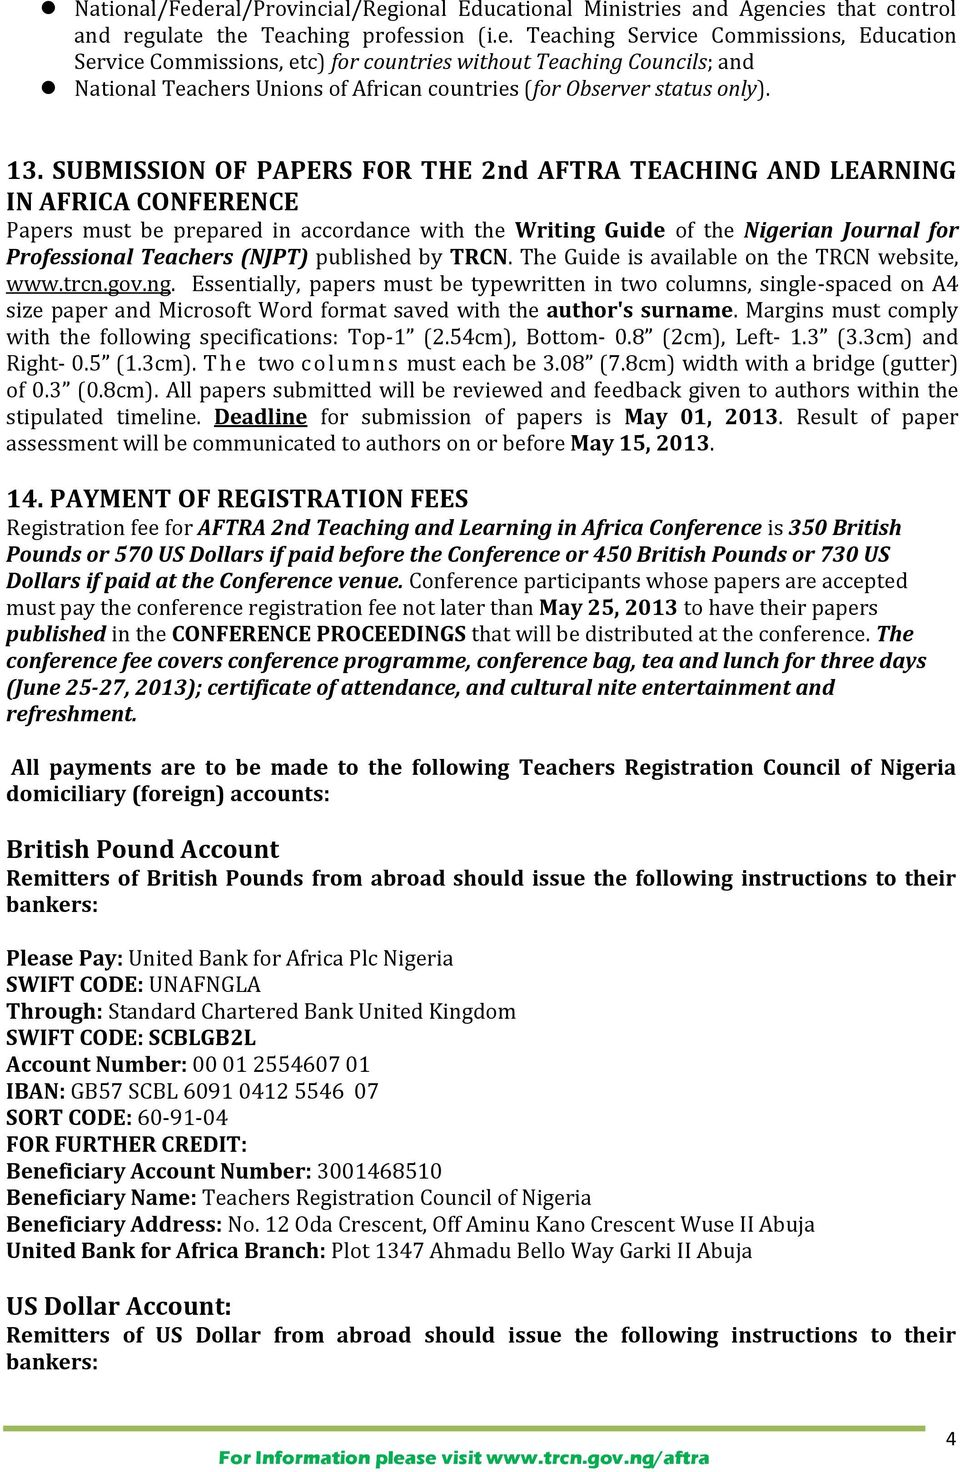 (NJPT) published by TRCN. The Guide is available on the TRCN website, www.trcn.gov.ng.